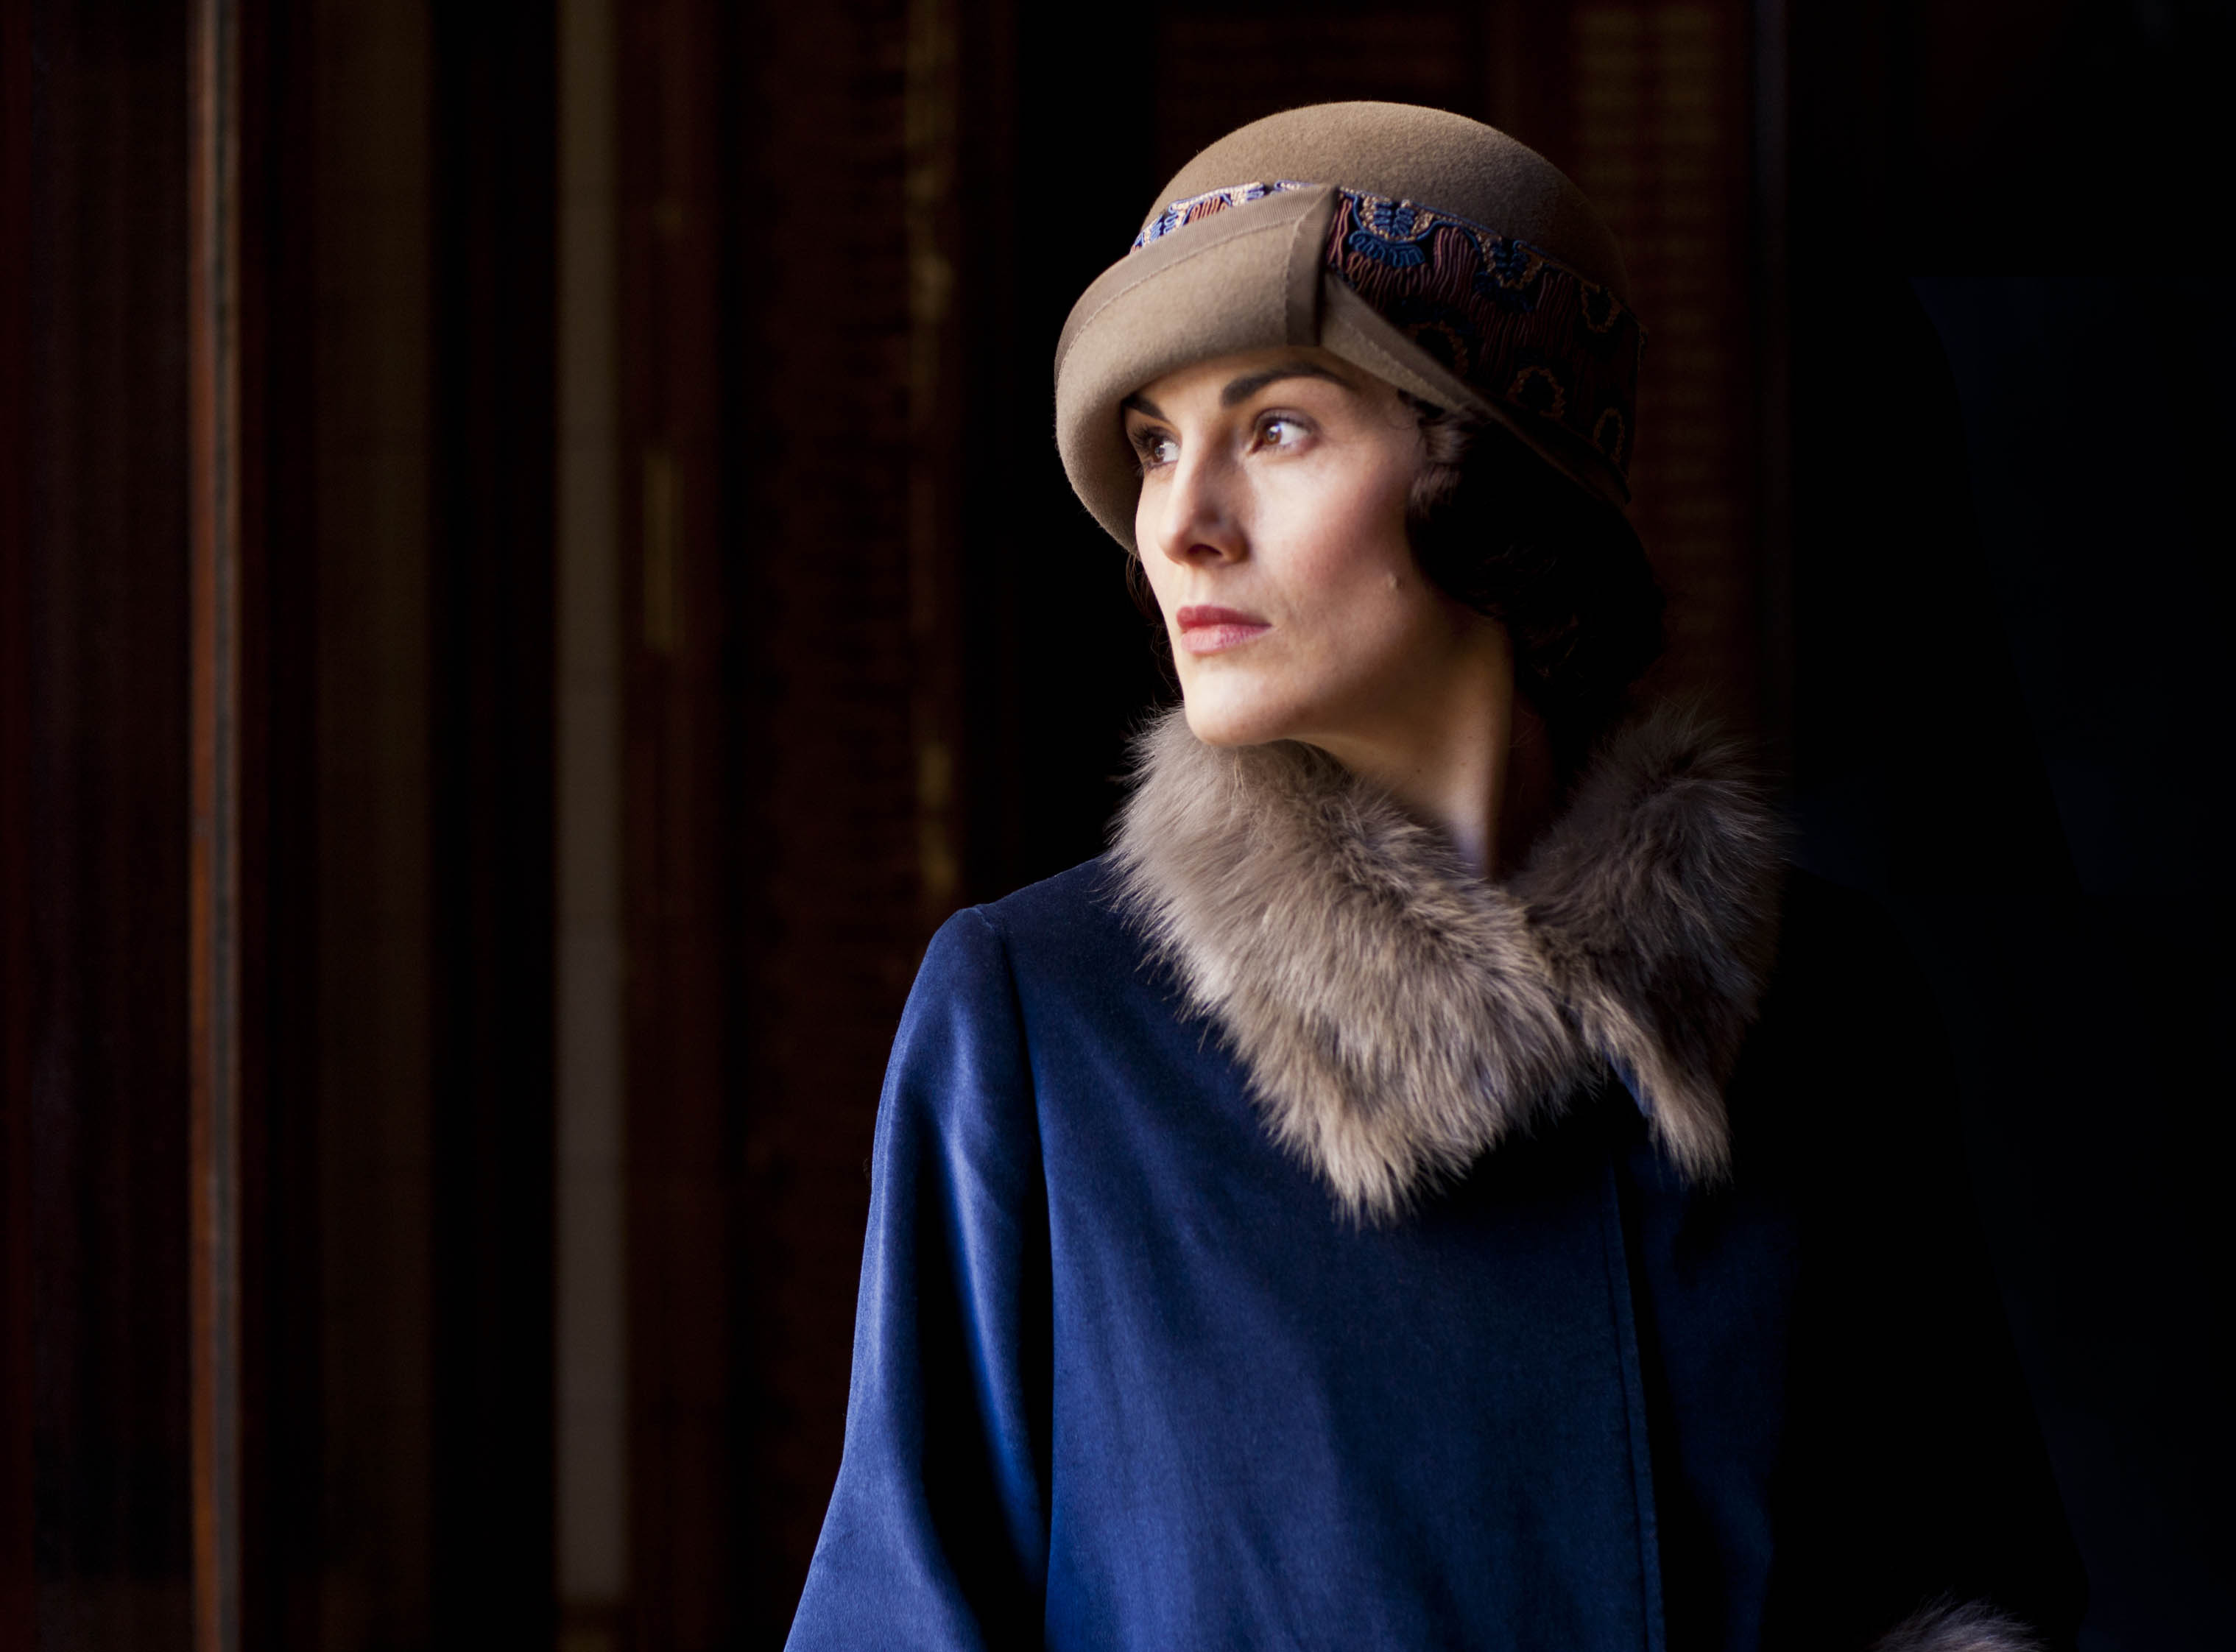 Downton Abbey, seasonj 5, episode 3: Lady Mary